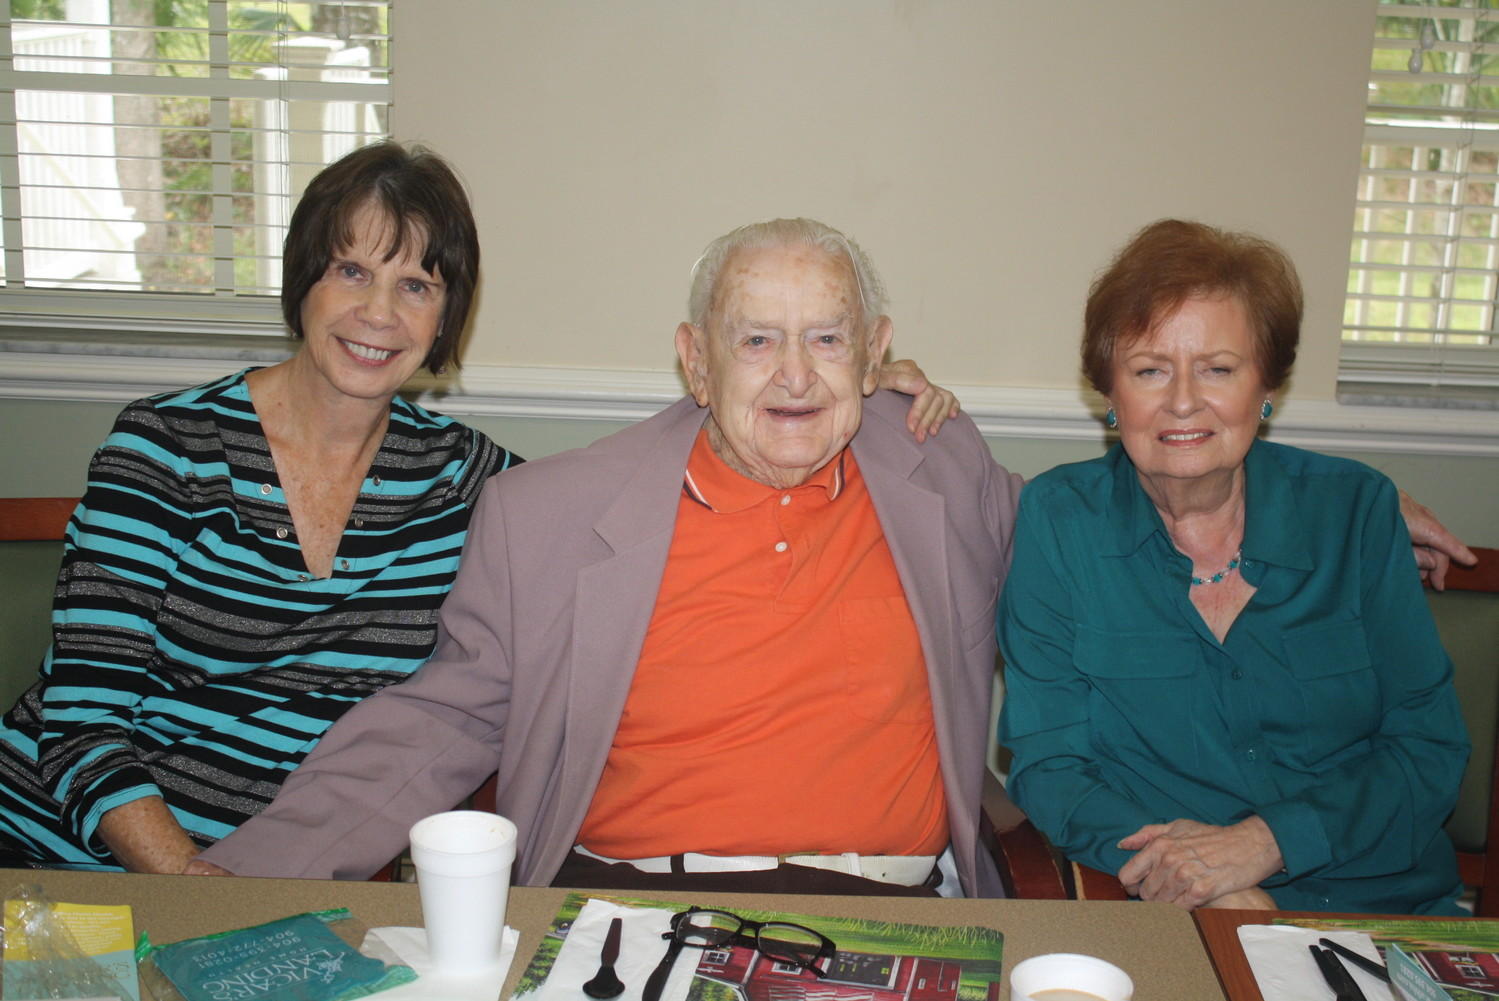 Joyce Scott, Nelson Johnson (97 years old, Army veteran in WWII) and Helen Martin